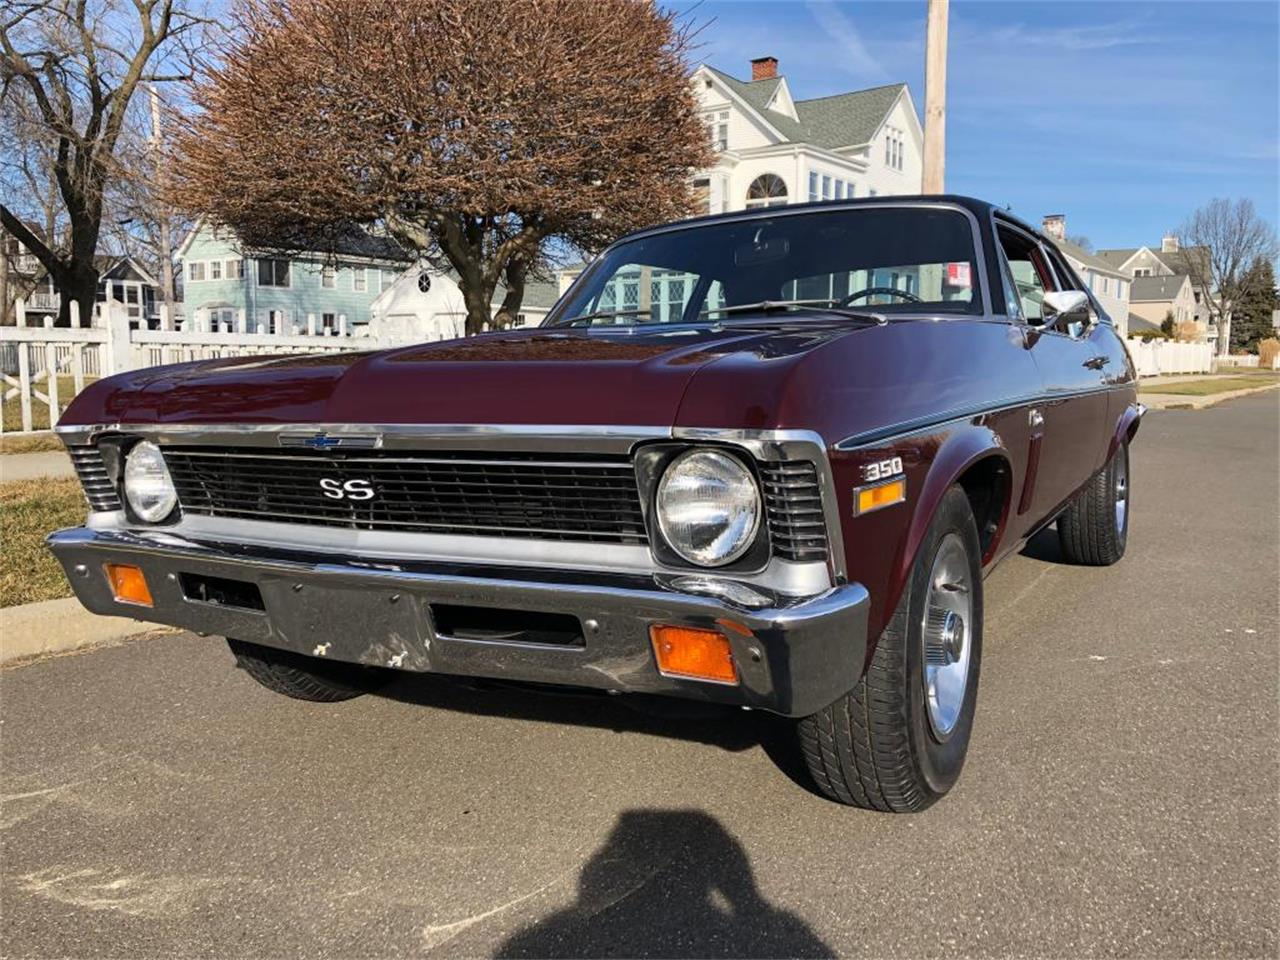 1971 Chevrolet Nova for sale in Milford City, CT – photo 10